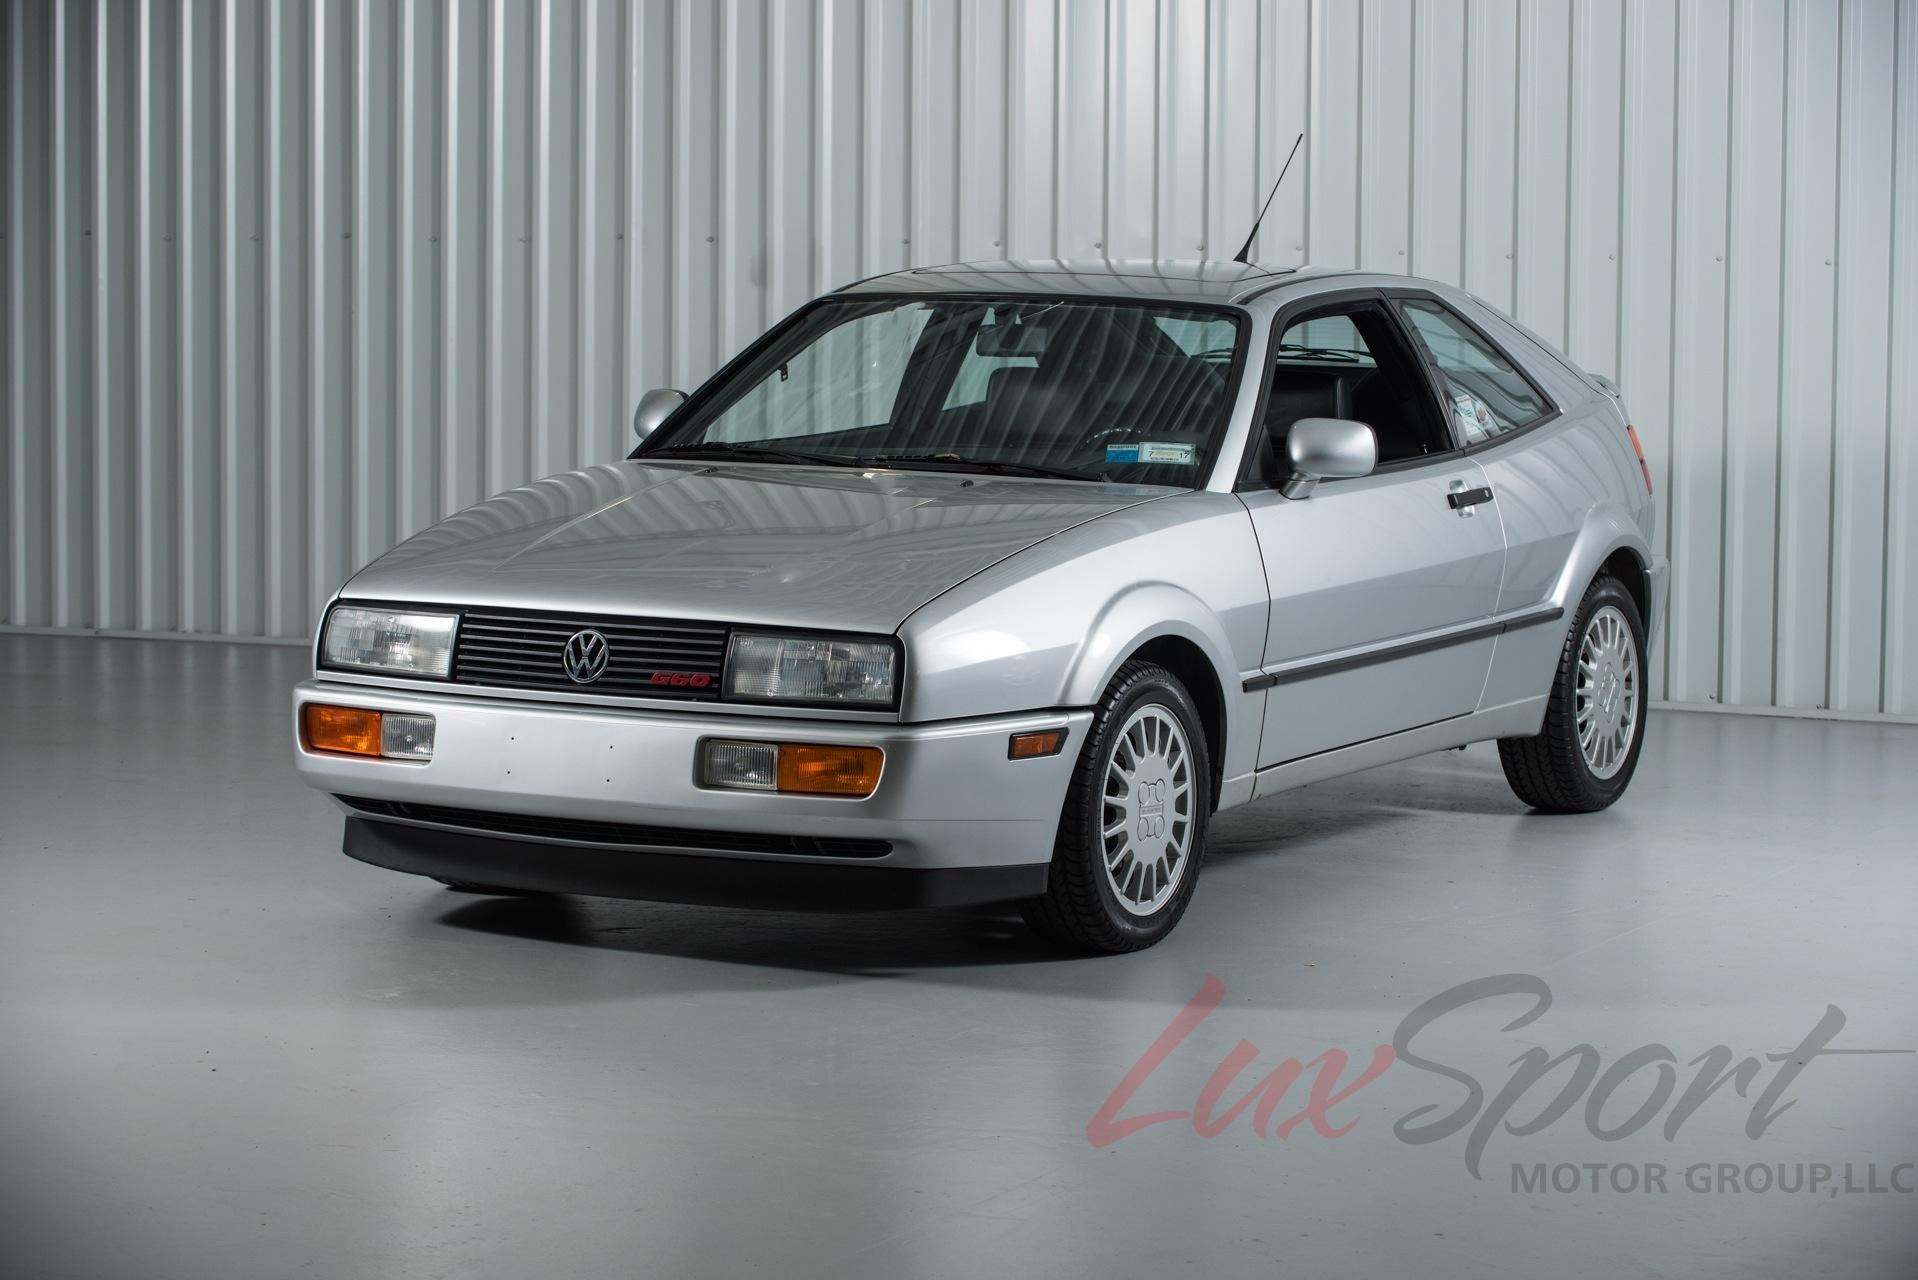 1990 volkswagen corrado g60 coupe. Black Bedroom Furniture Sets. Home Design Ideas